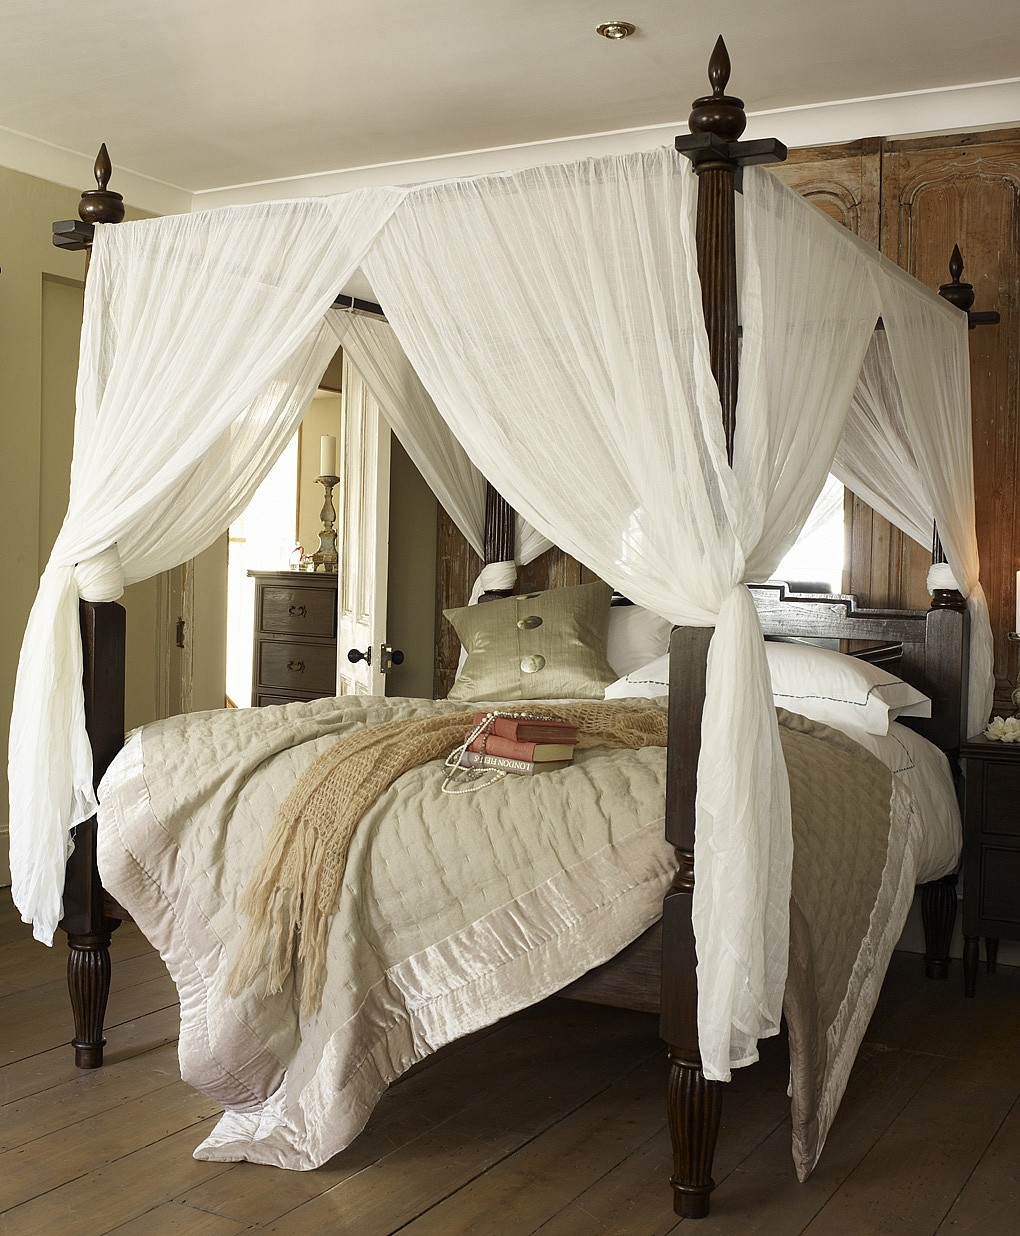 4 Poster Canopy Bed Frame